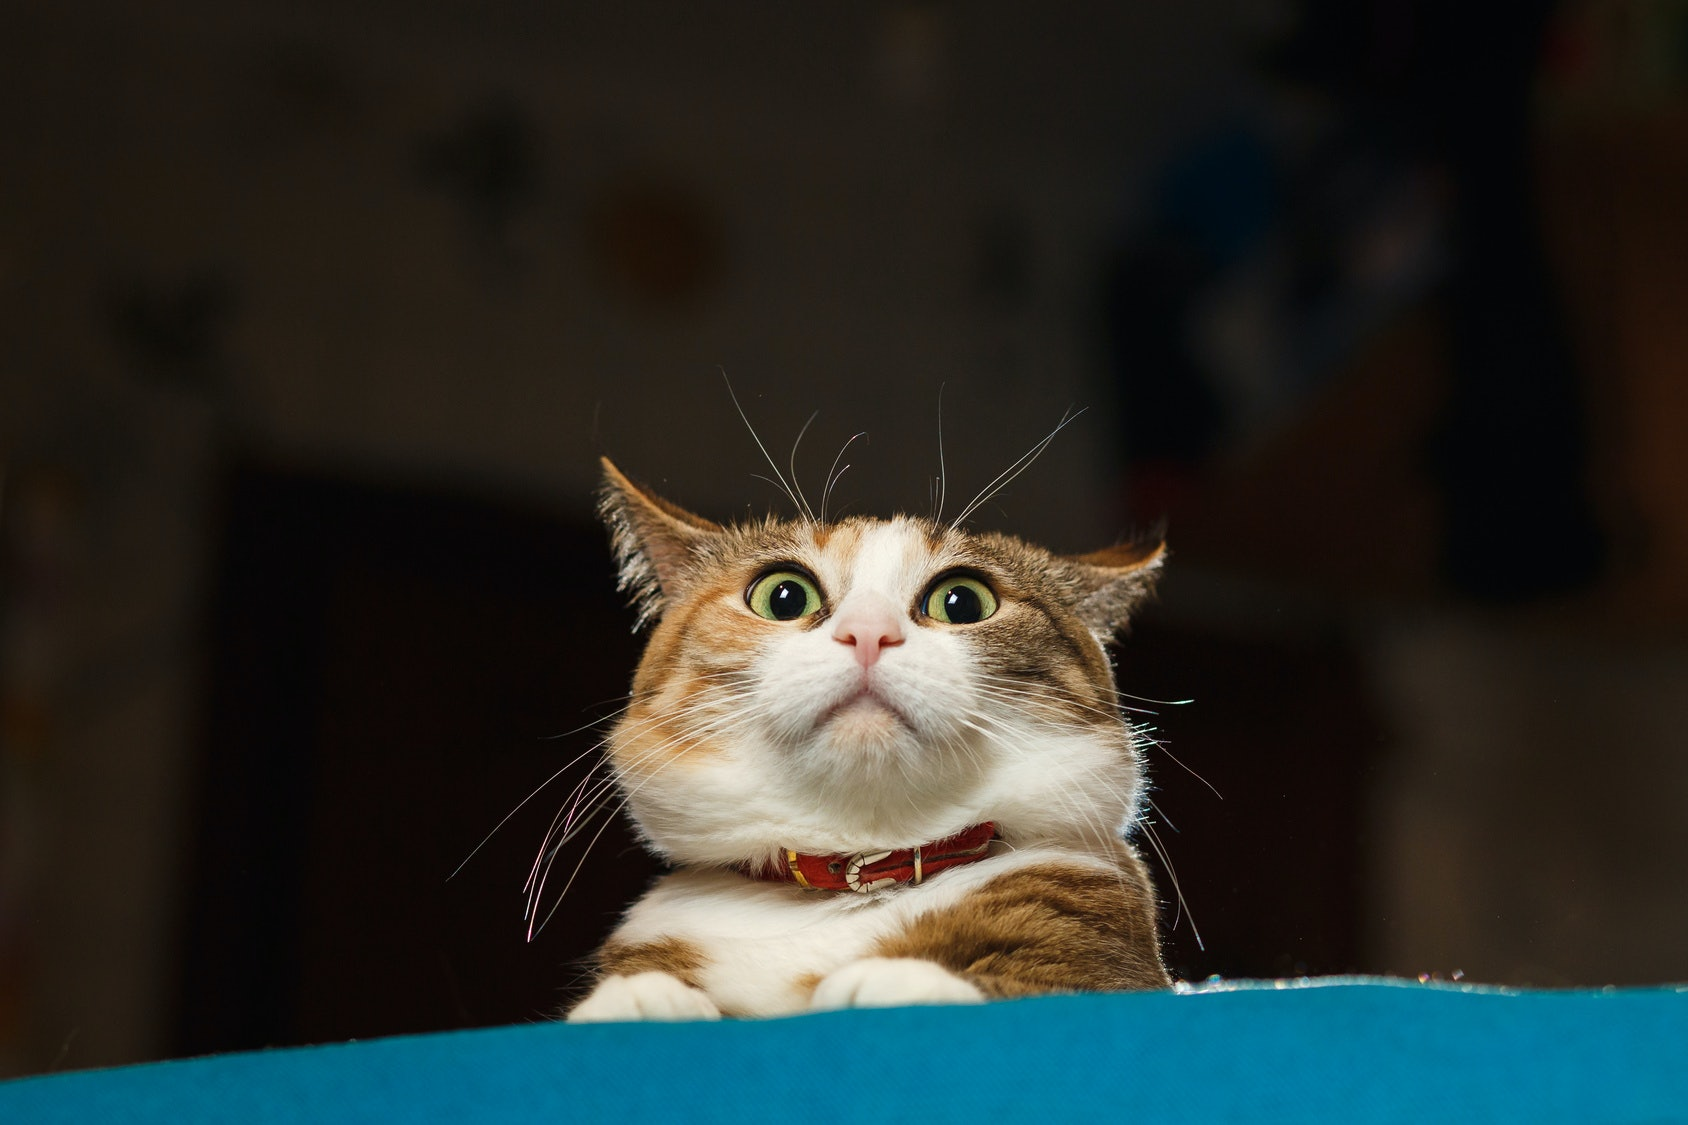 Funny cat pictures Compilation 38 Funny Cat Gifs Because Your Feline Is Not The Only One That Acts That Way Romper 38 Funny Cat Gifs Because Your Feline Is Not The Only One That Acts